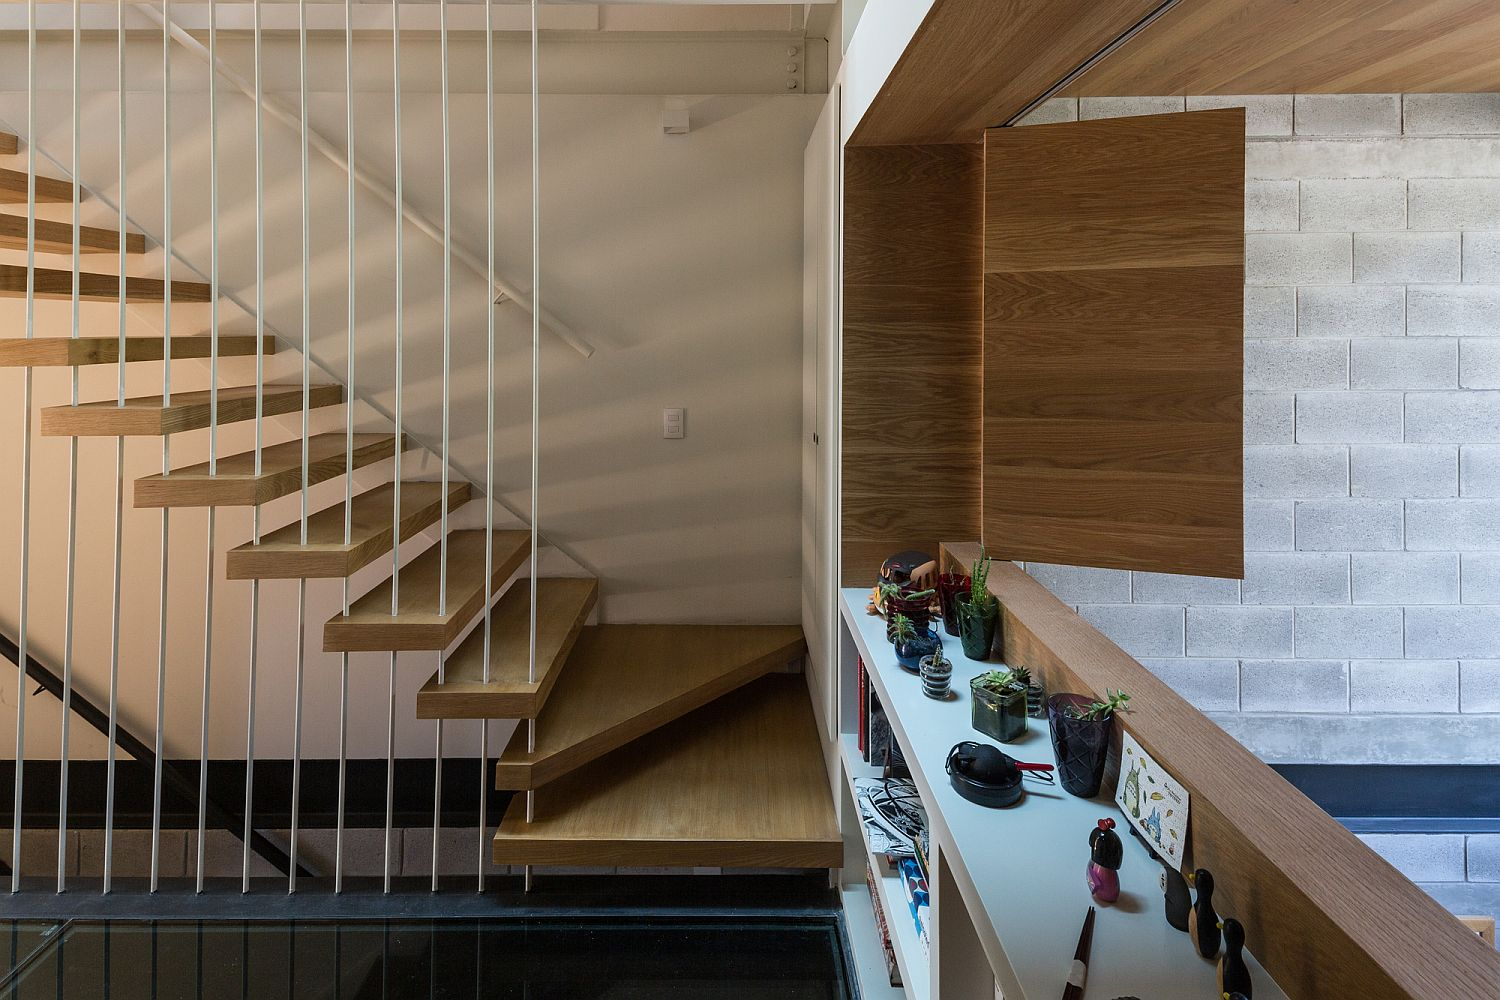 Floating style staircase in wood with metallic beams